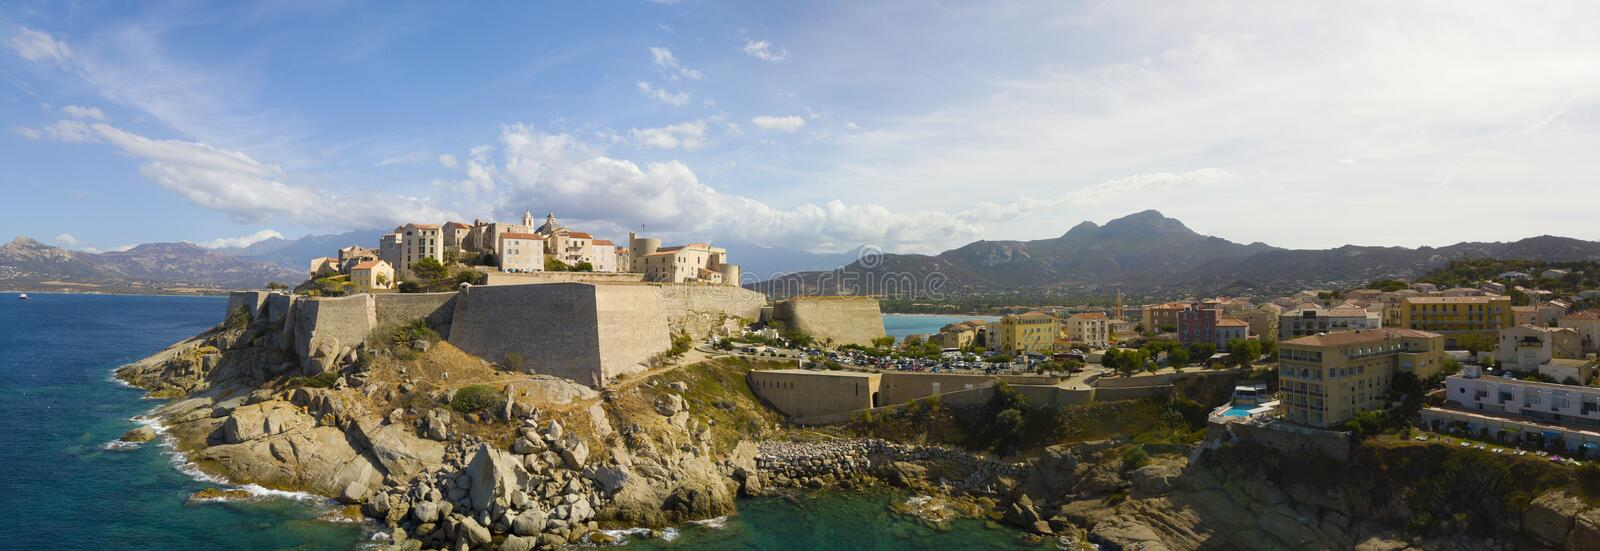 Aerial view of Calvi city, Corsica, France royalty free stock photography